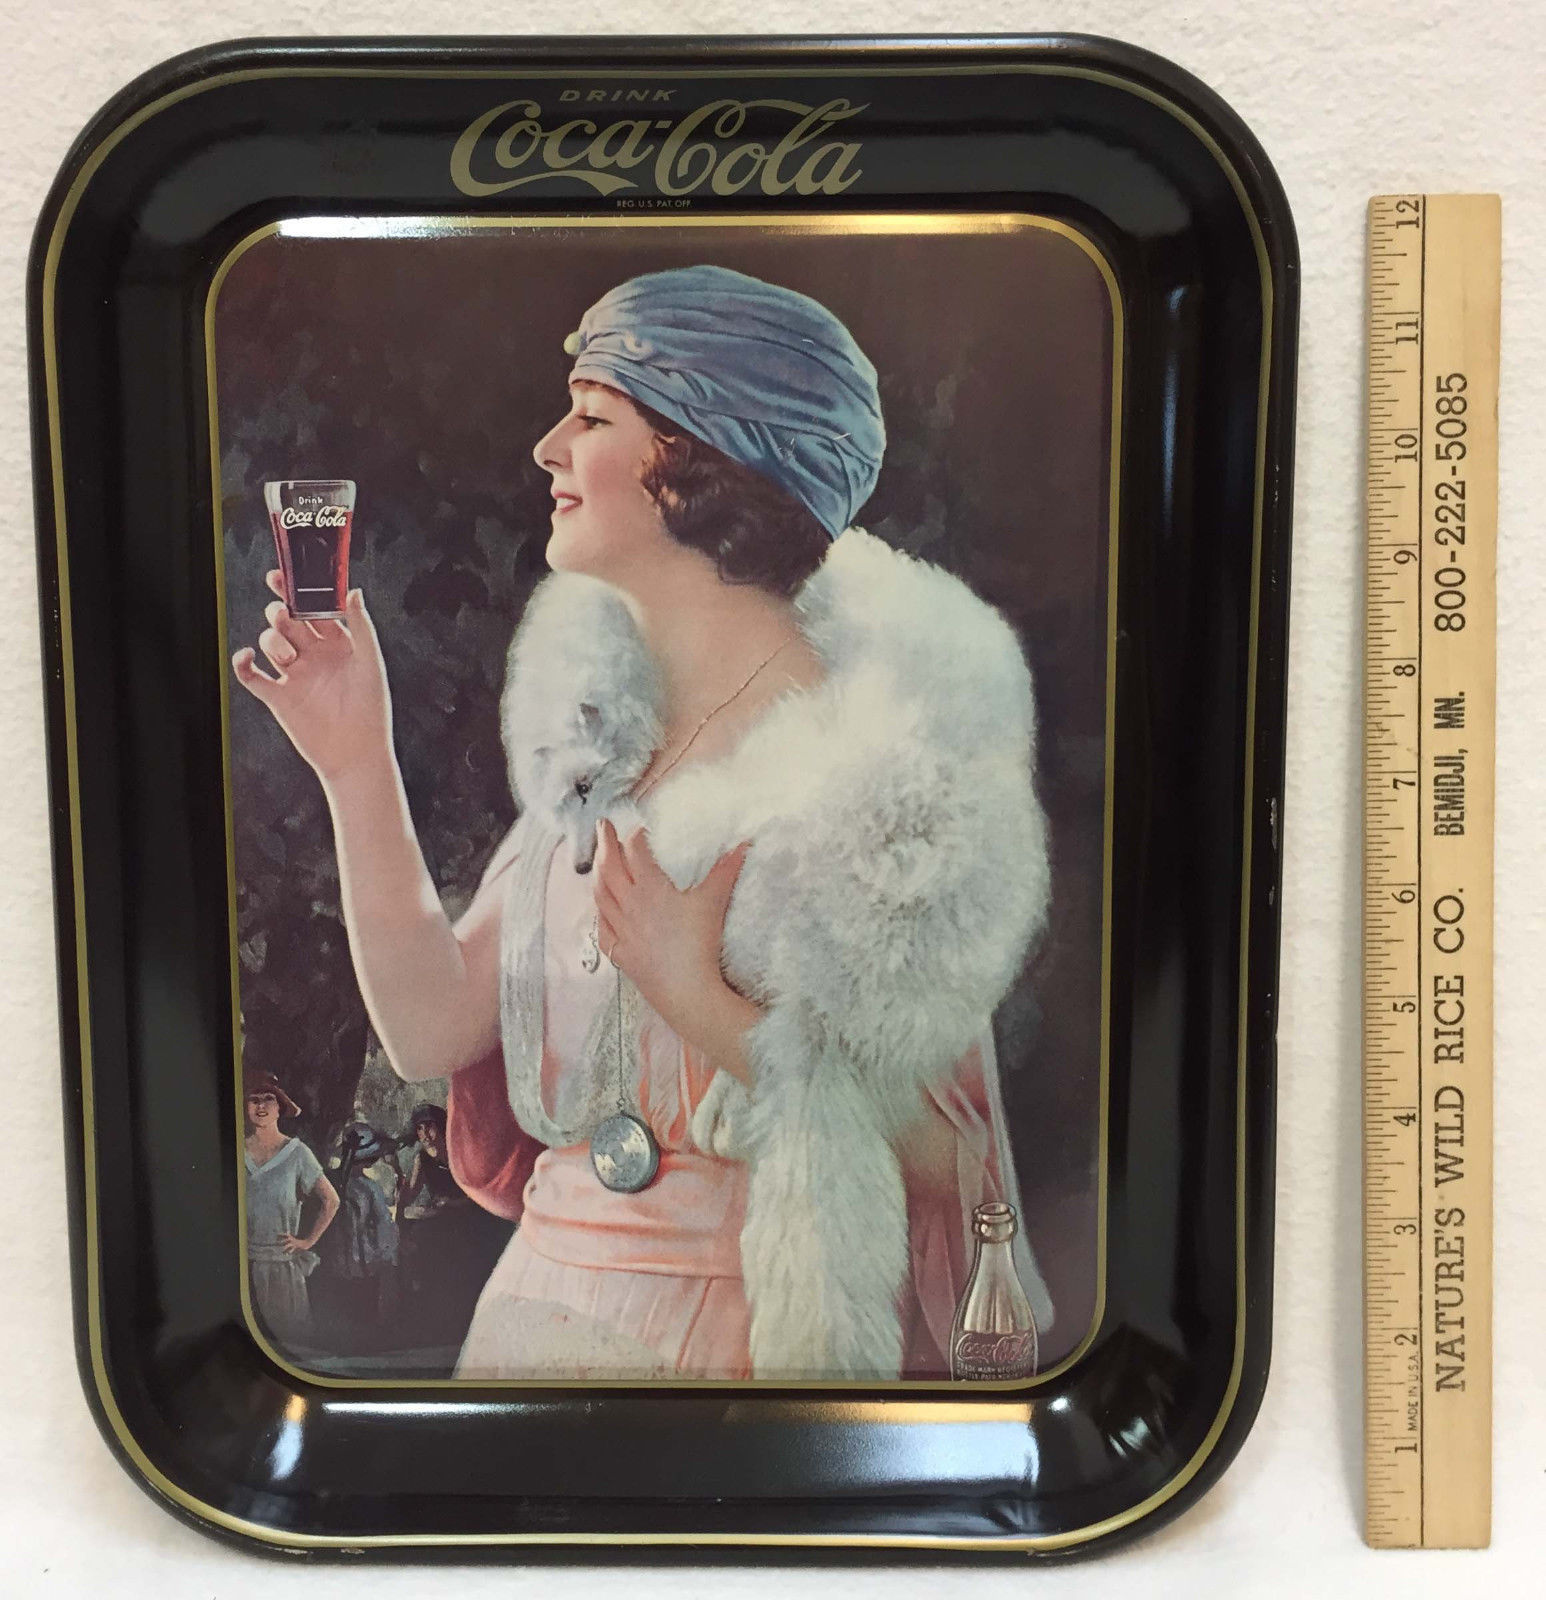 Primary image for Coca Cola Tray 1925 Woman Flapper Drinking a Coke from Glass Metal Tin 1983 Mfg